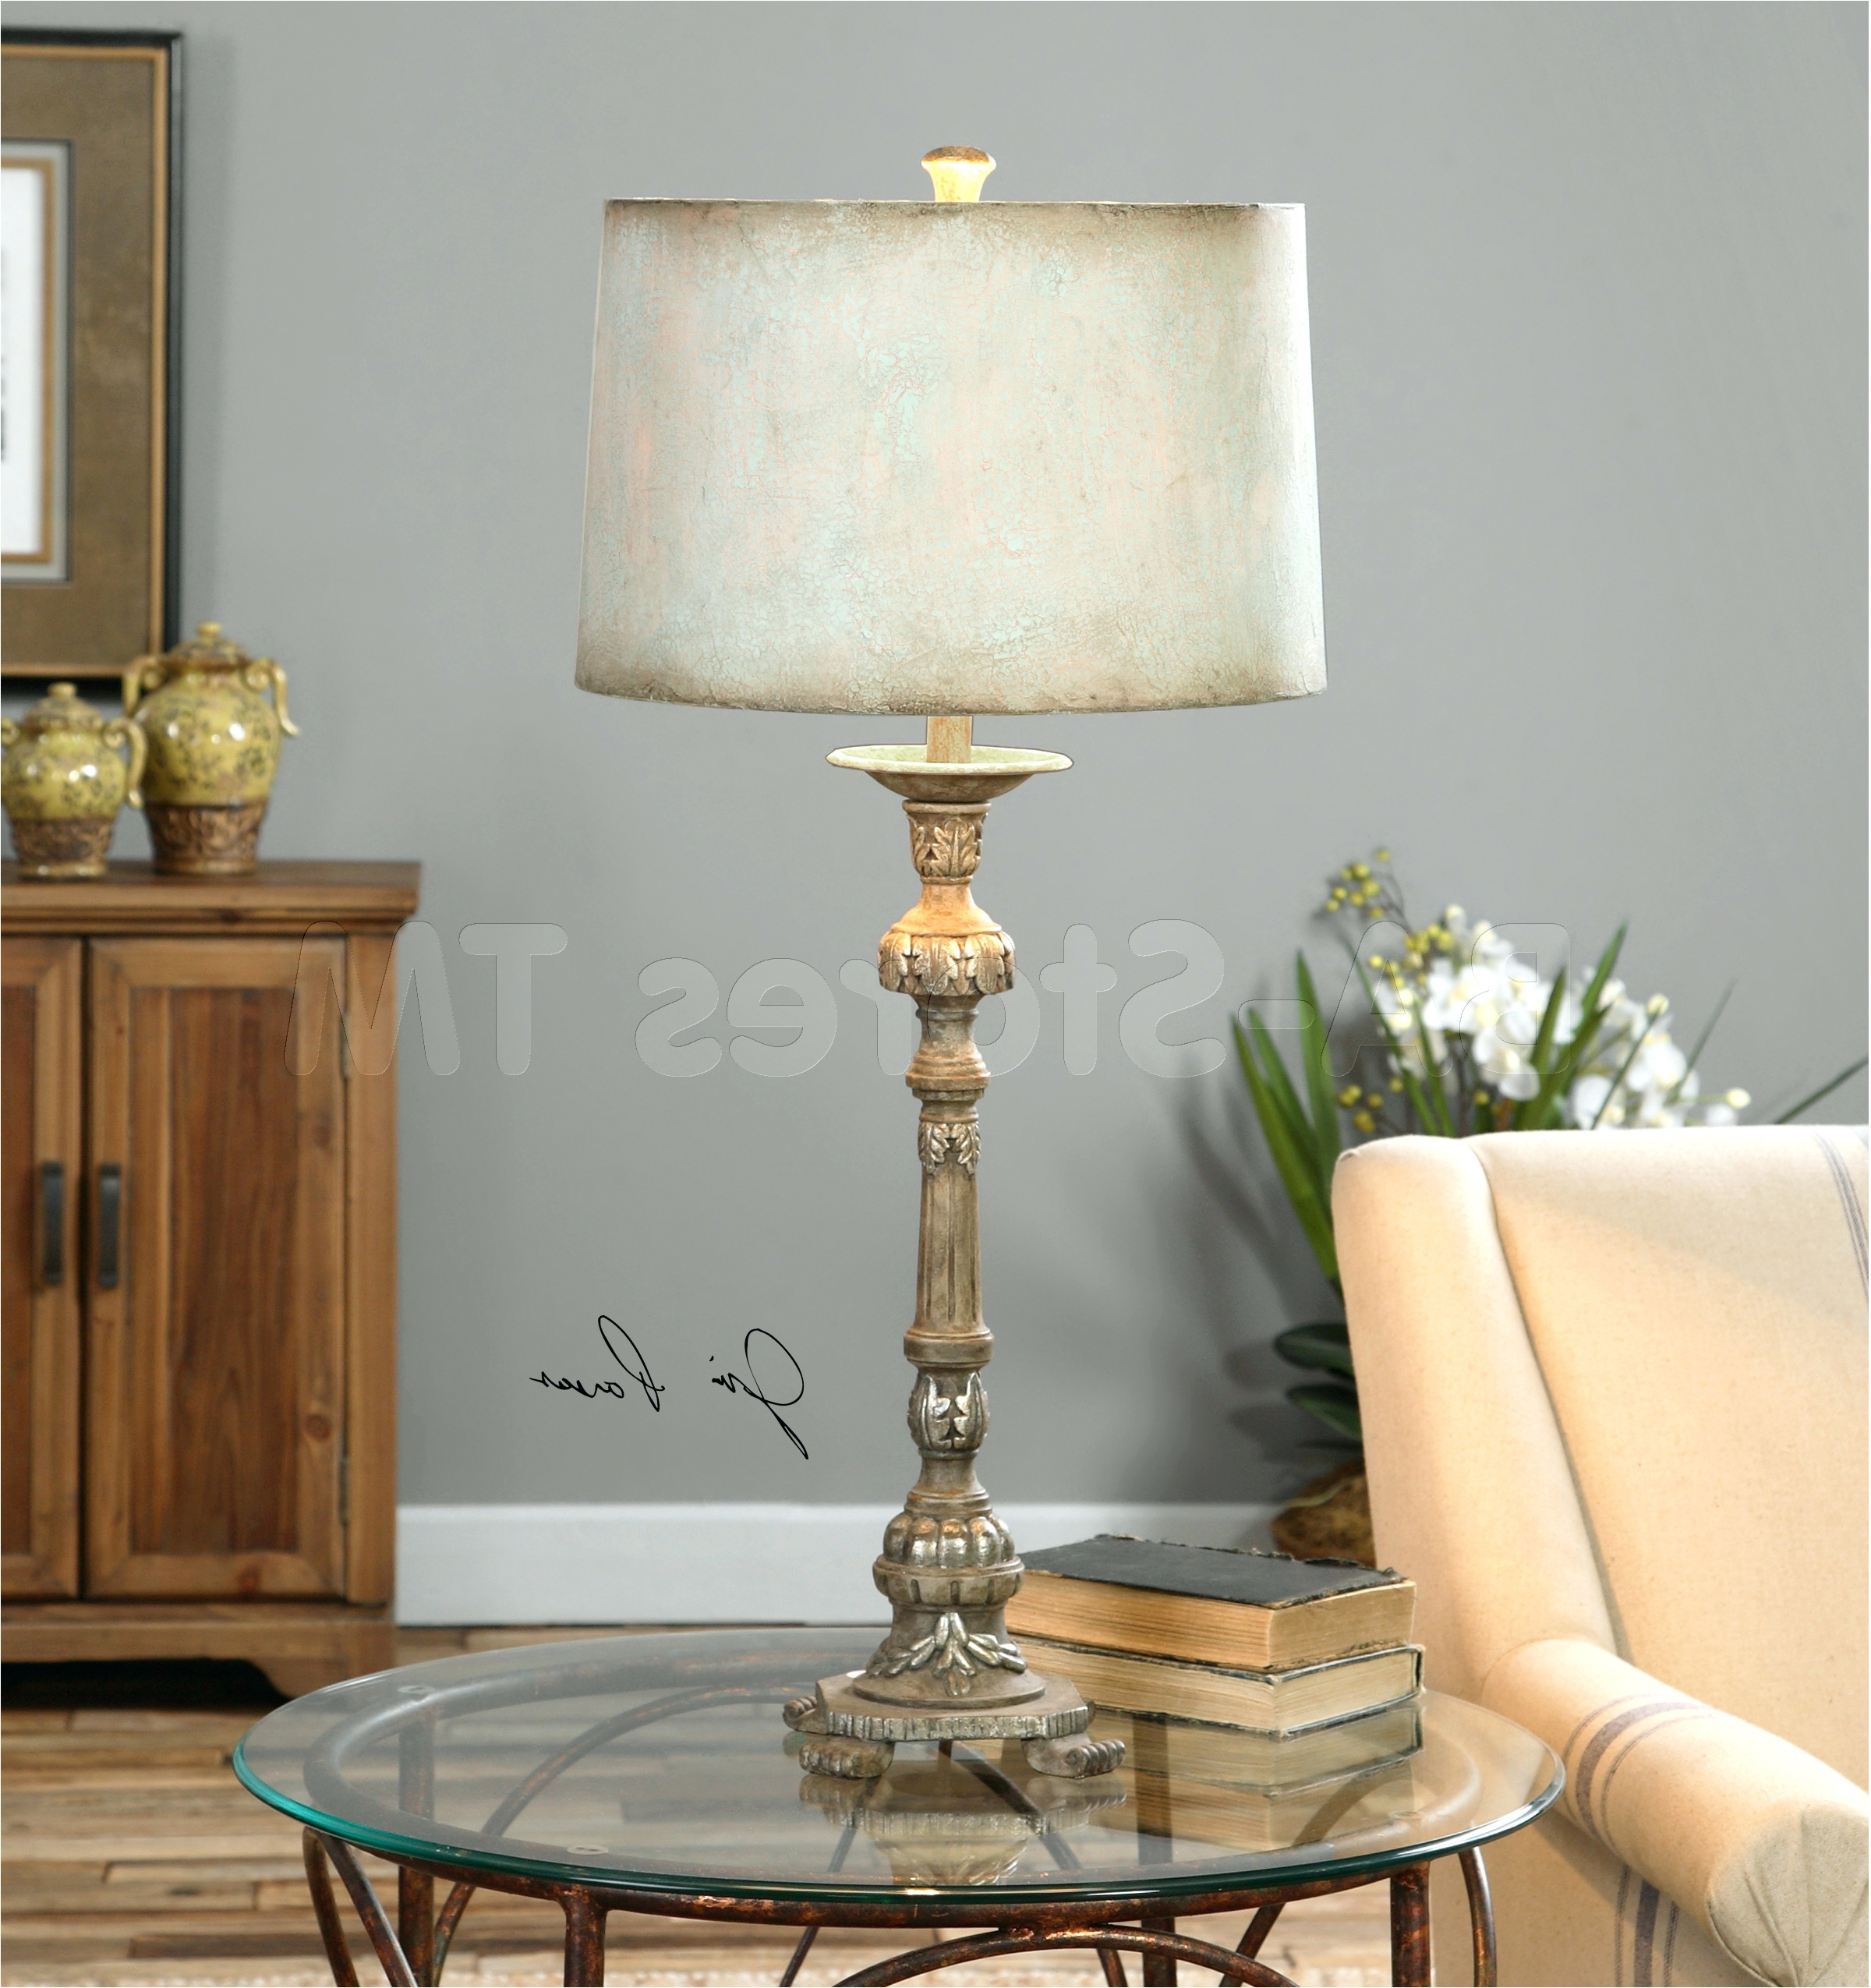 Newest Living Room End Table Lamps Within Home Design. New Trendy Lamps: Trendy Lamps Lovely Trendy Design (Gallery 18 of 20)